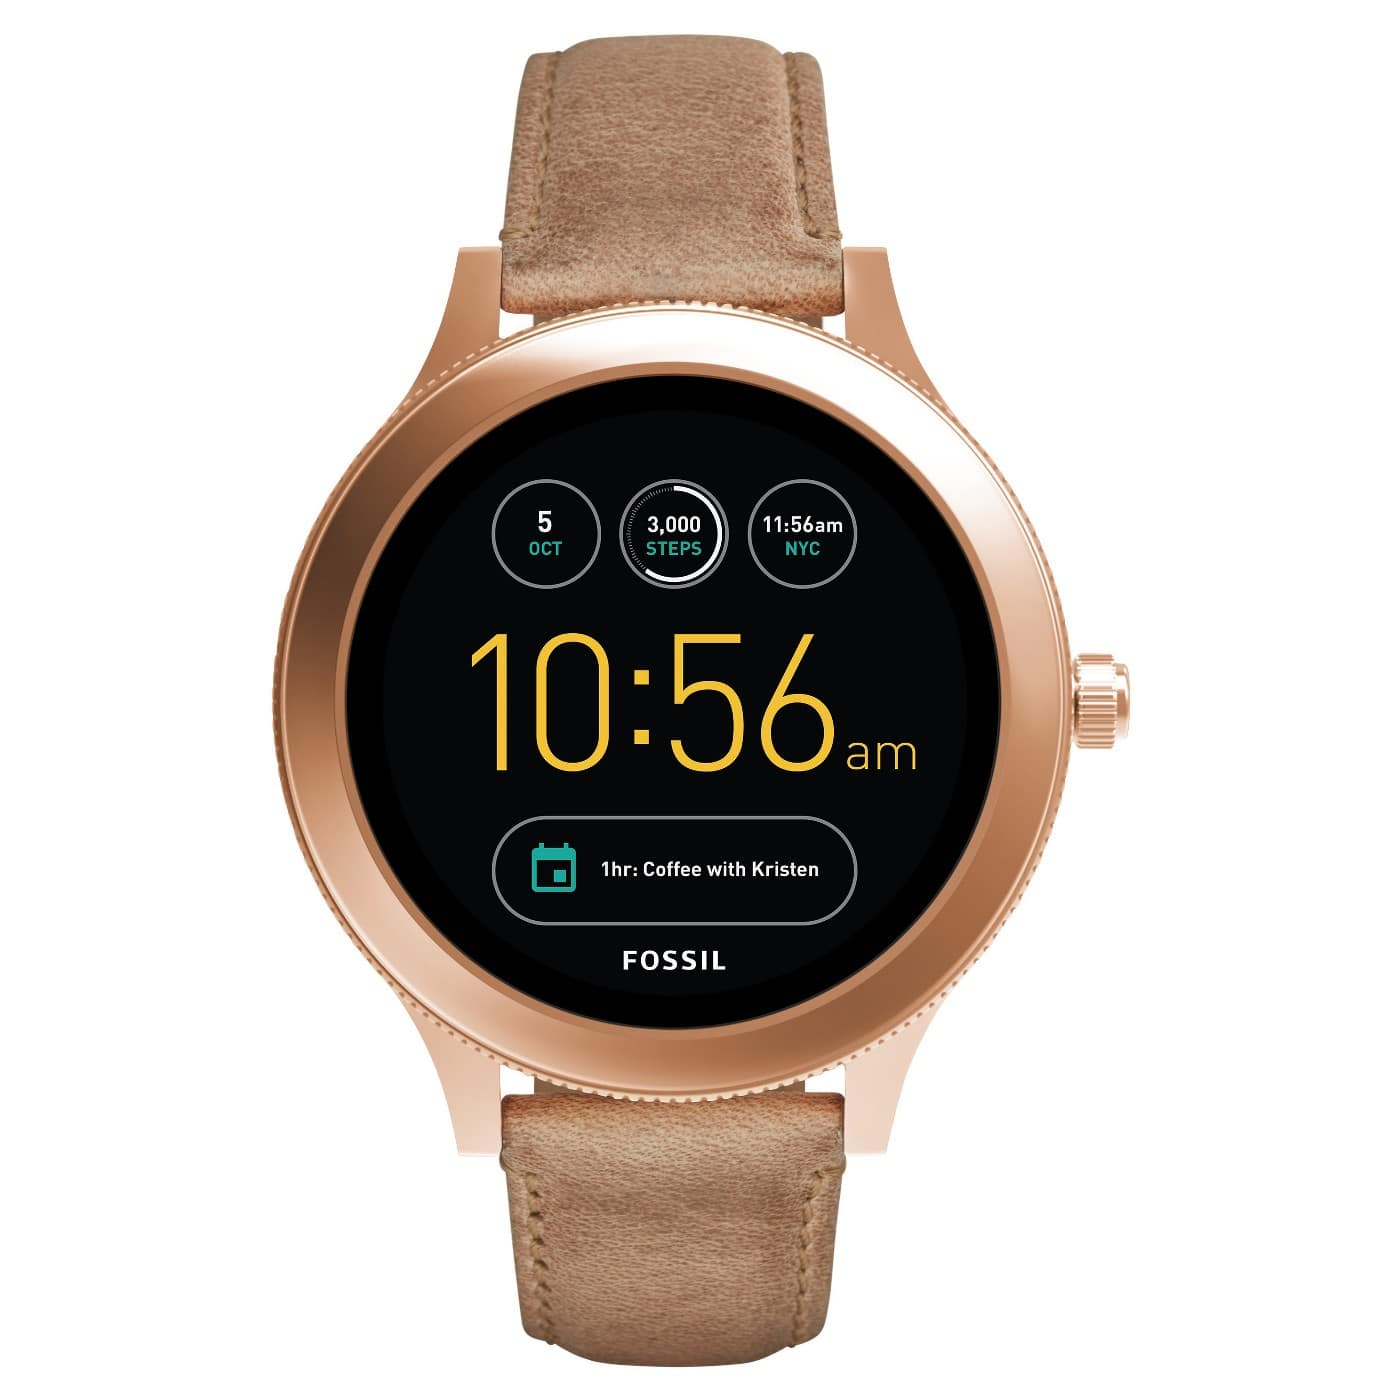 0a5efc4d7cc9 Target  Fossil Gen 3 Smartwatch - Venture 42mm Rose Gold-Tone and Light  Brown Leather  127.50